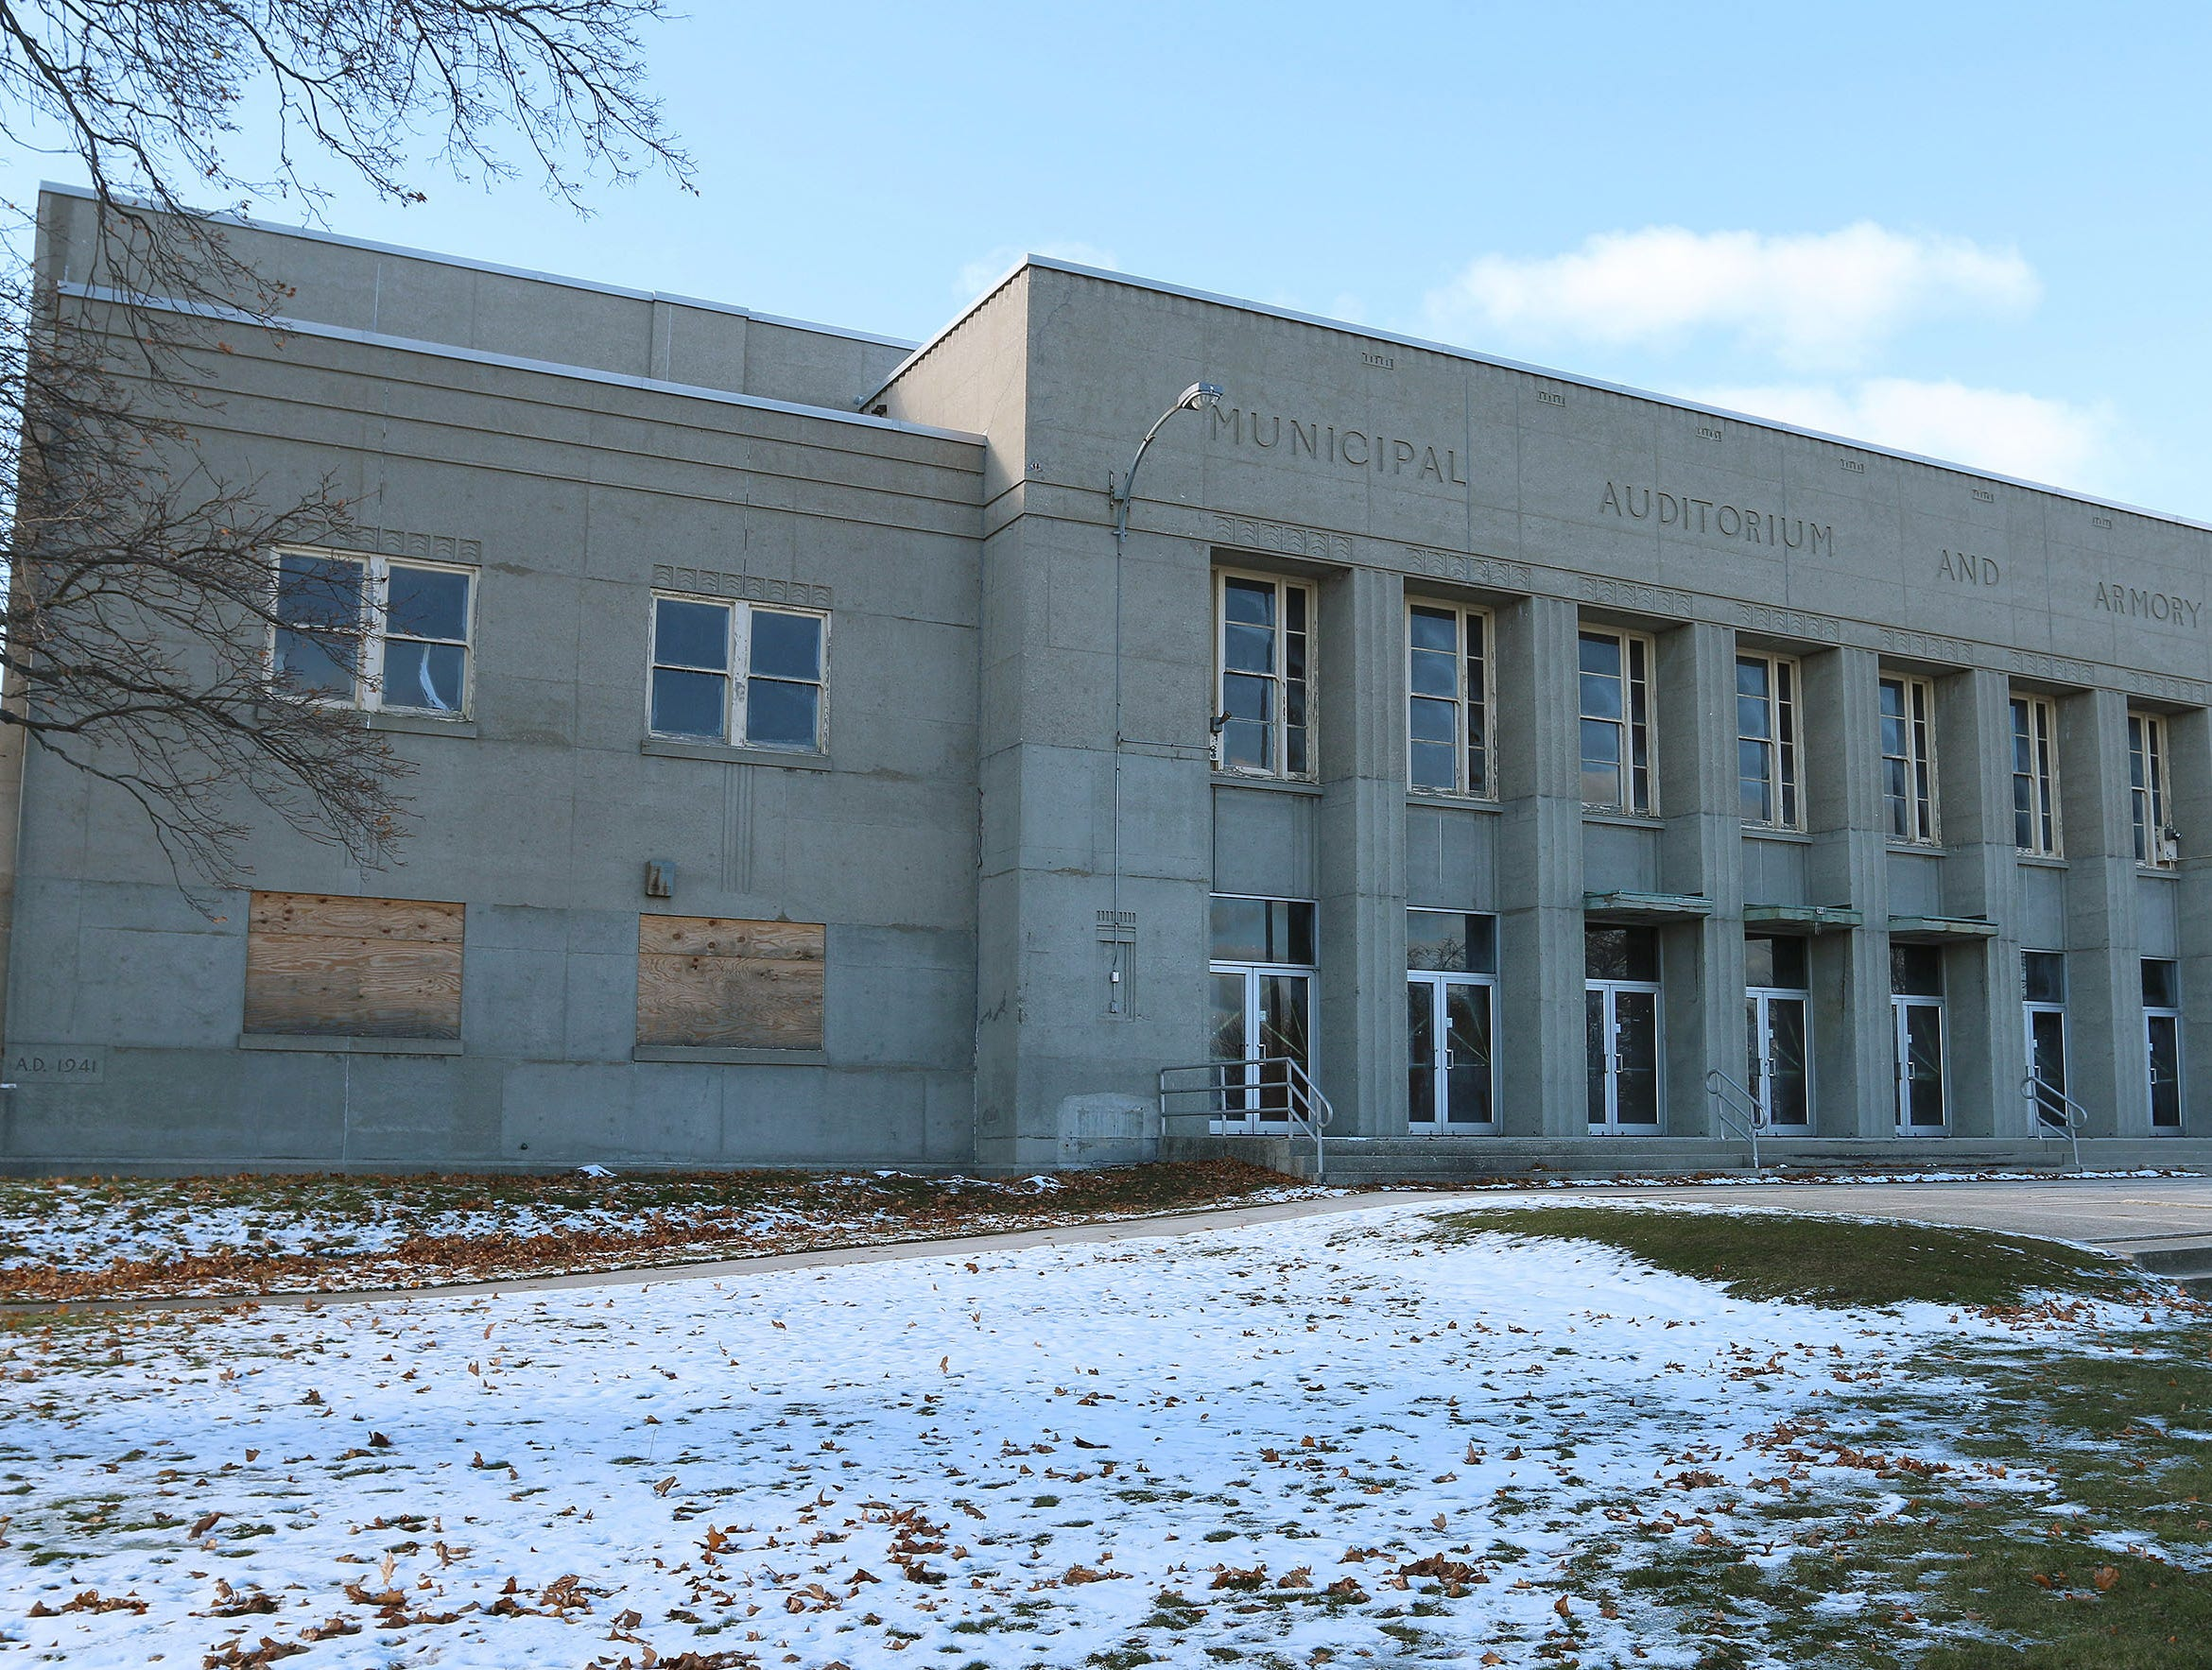 The Sheboygan Armory, with some windows boarded up as it appears, Tuesday, November 13, 2018, in Sheboygan, Wis.